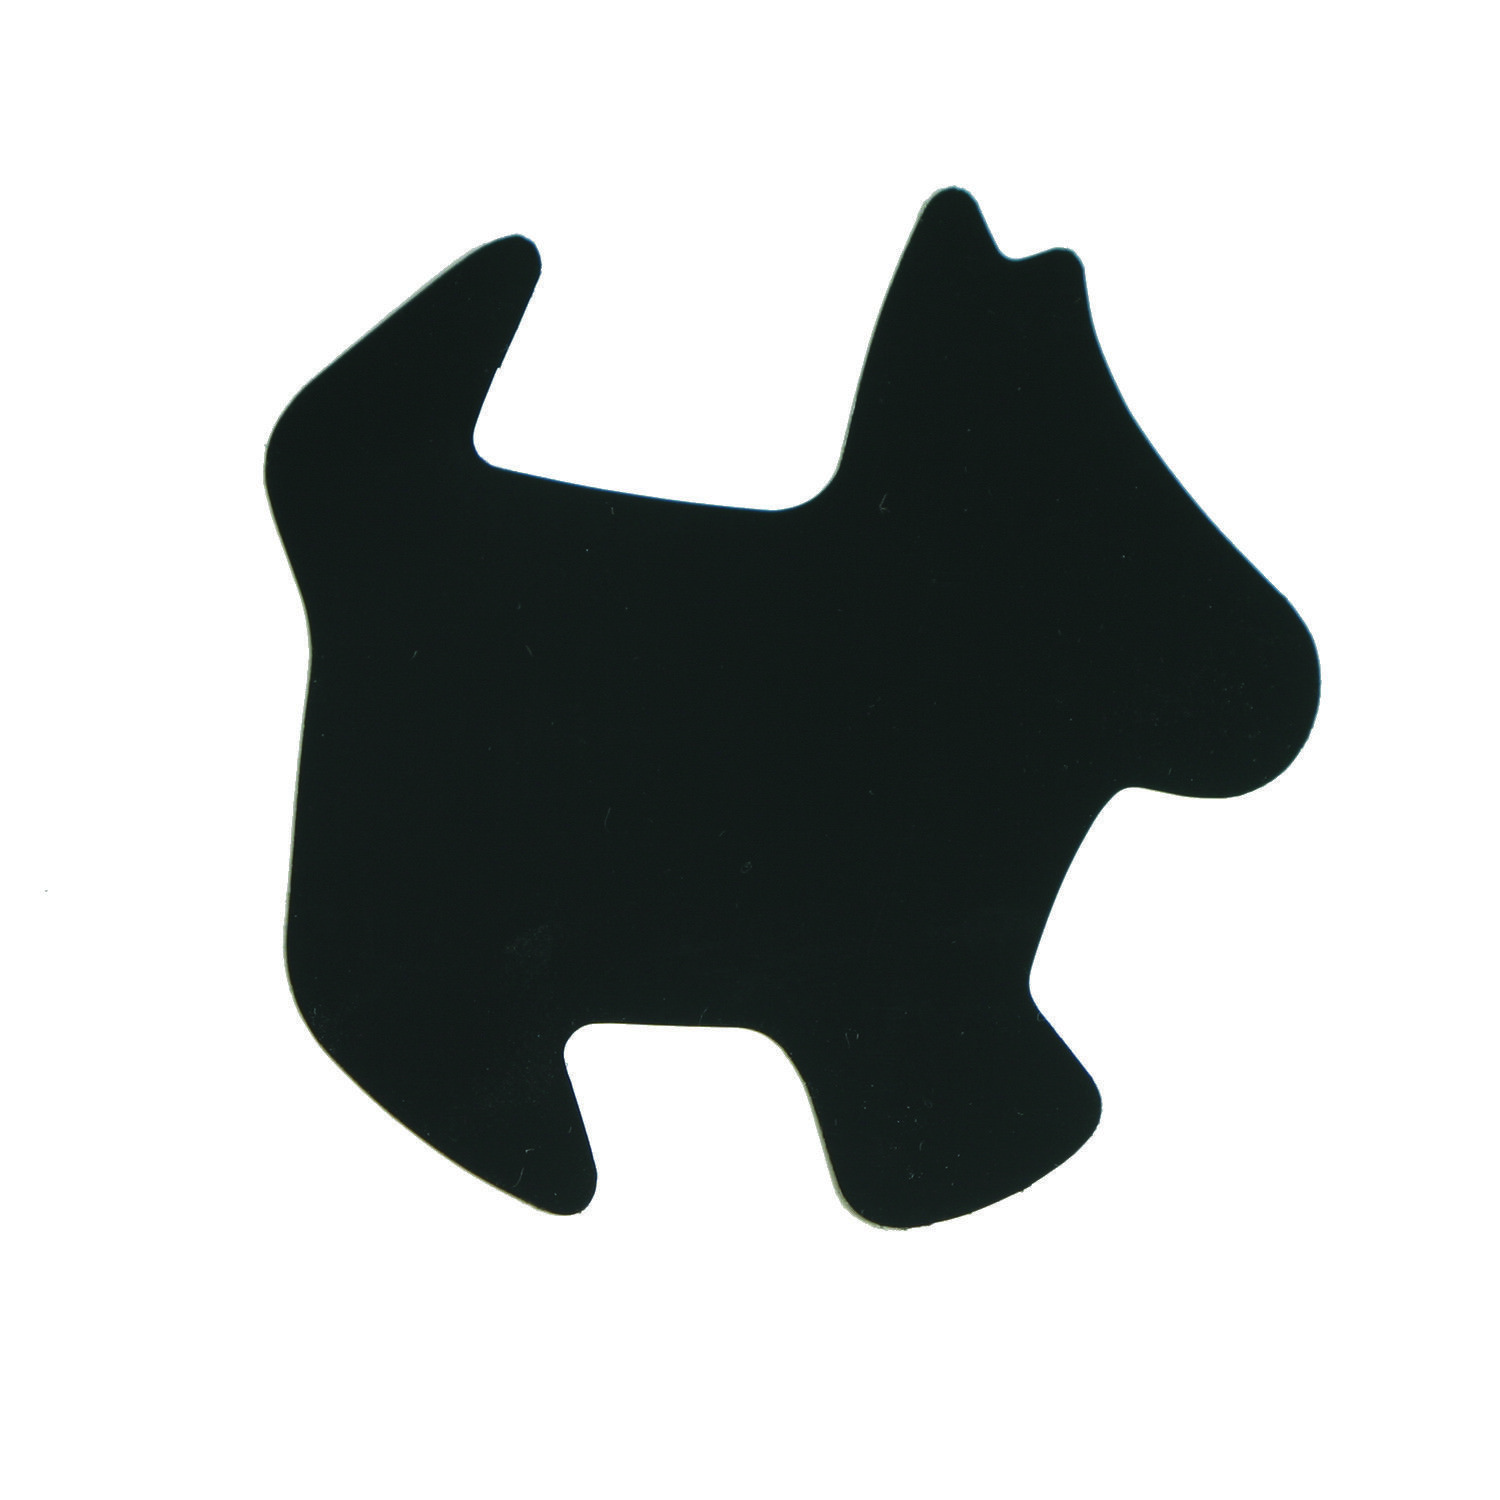 Dog Cut-Out Shapes Confetti Die Cut FREE SHIPPING